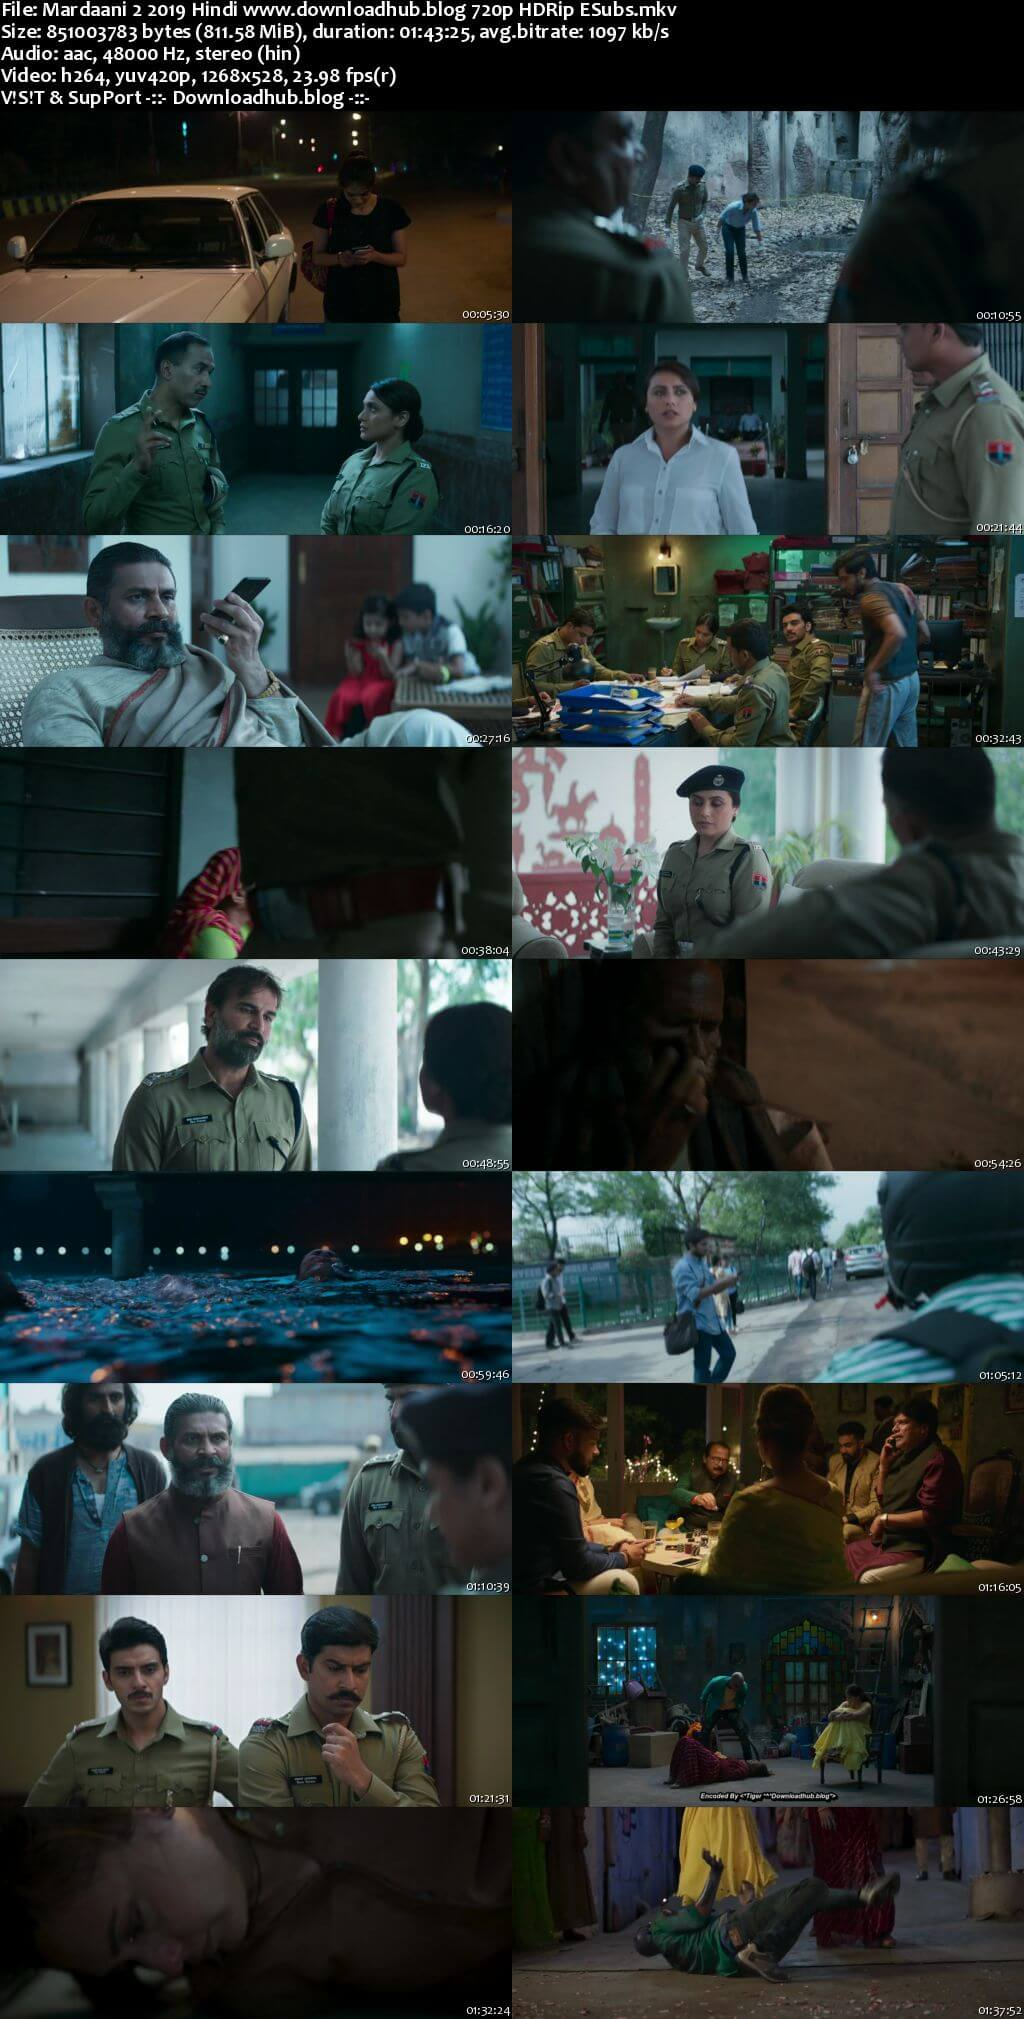 Mardaani 2 2019 Hindi 720p HDRip ESubs